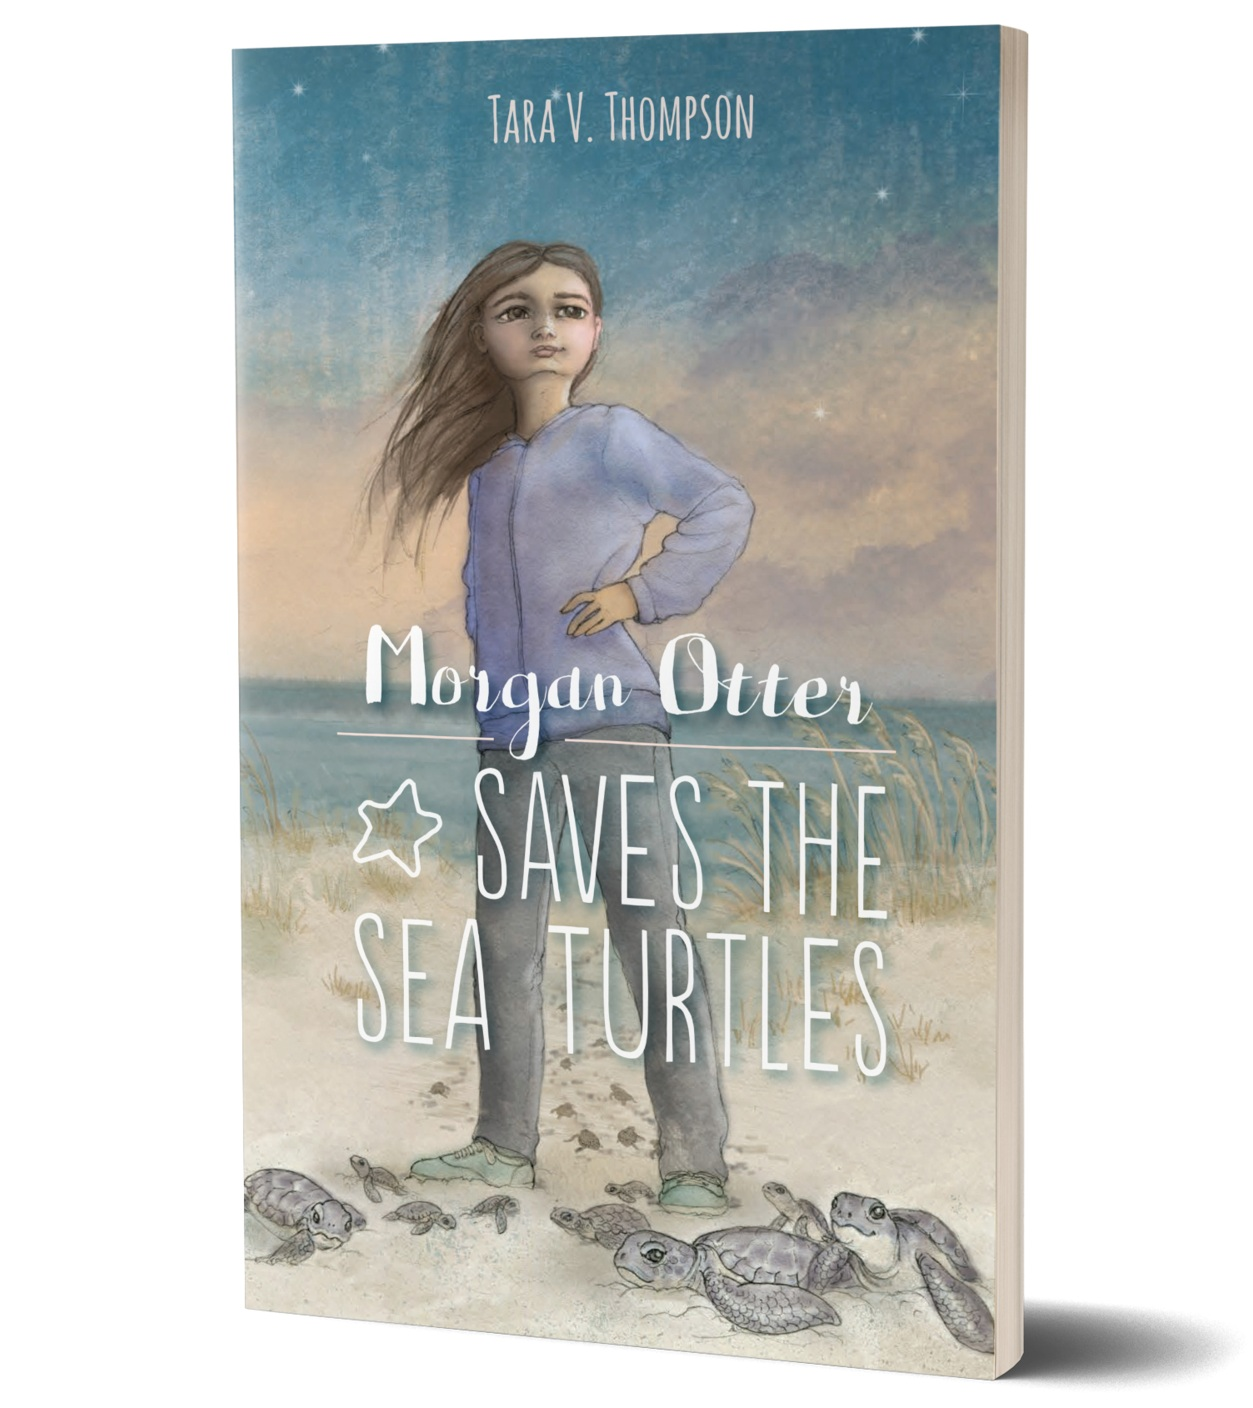 Morgan Otter Saves the Sea Turtles book cover, girl standing on beach, surrounded by sea turtles, drawn cover,